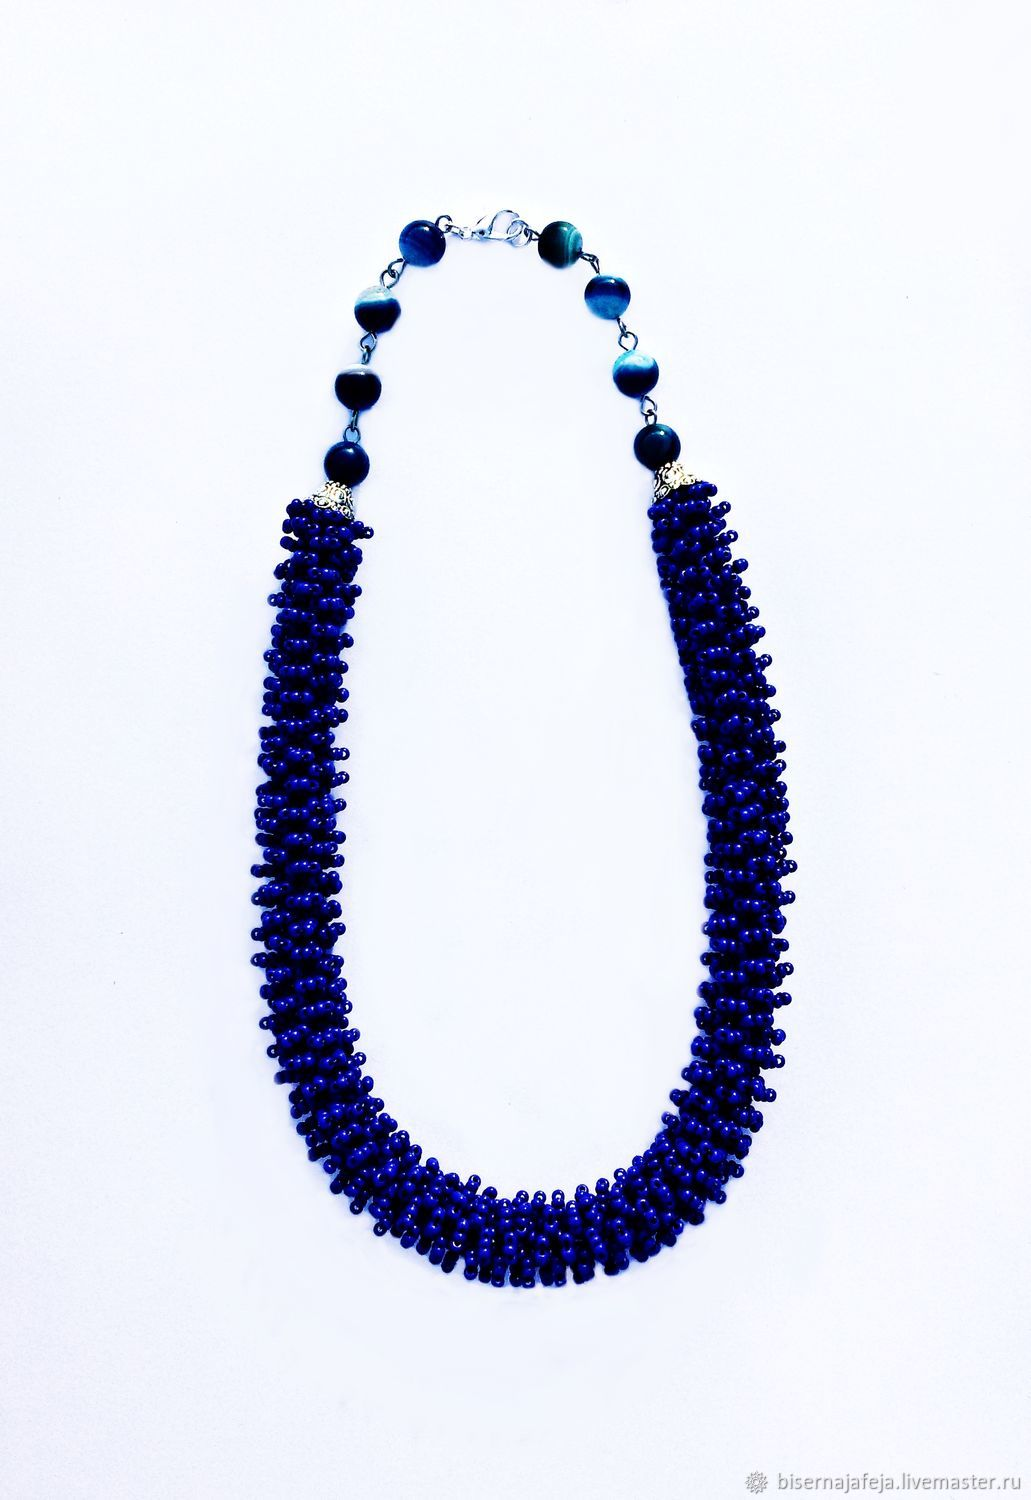 Beads-necklace \